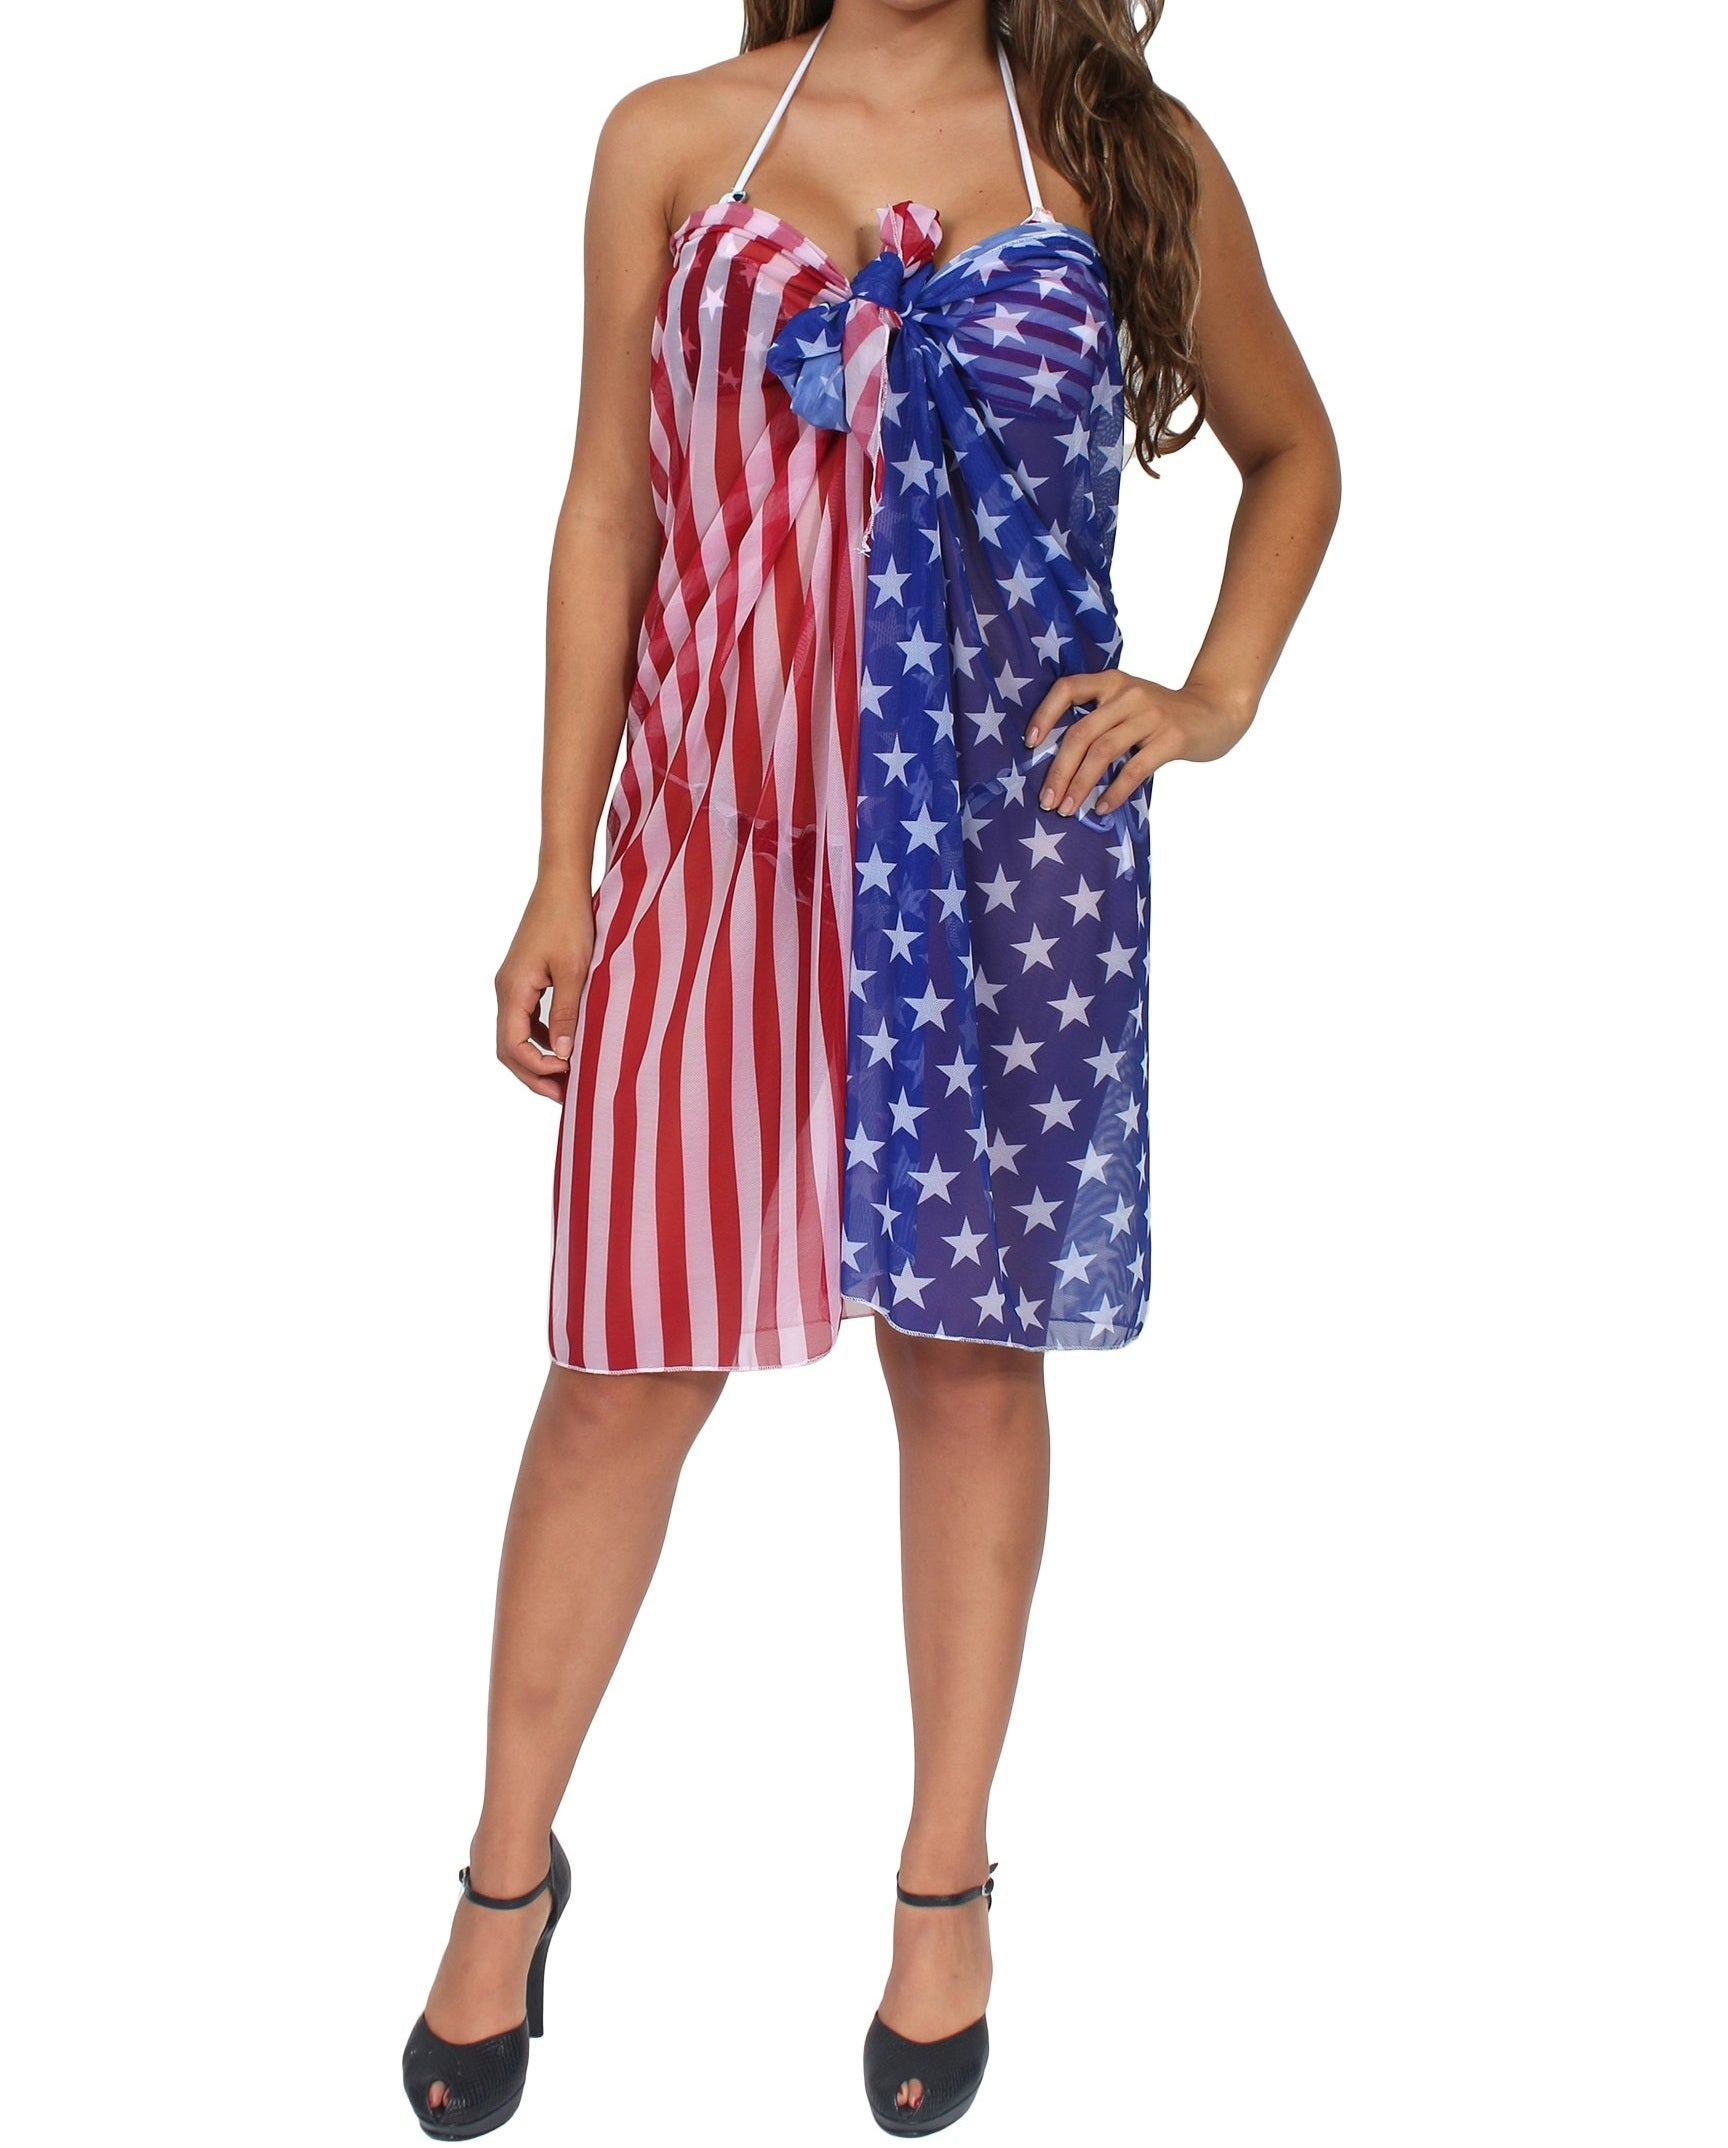 USA Stars and Stripes Cover Up Wrap - The Flag Shirt